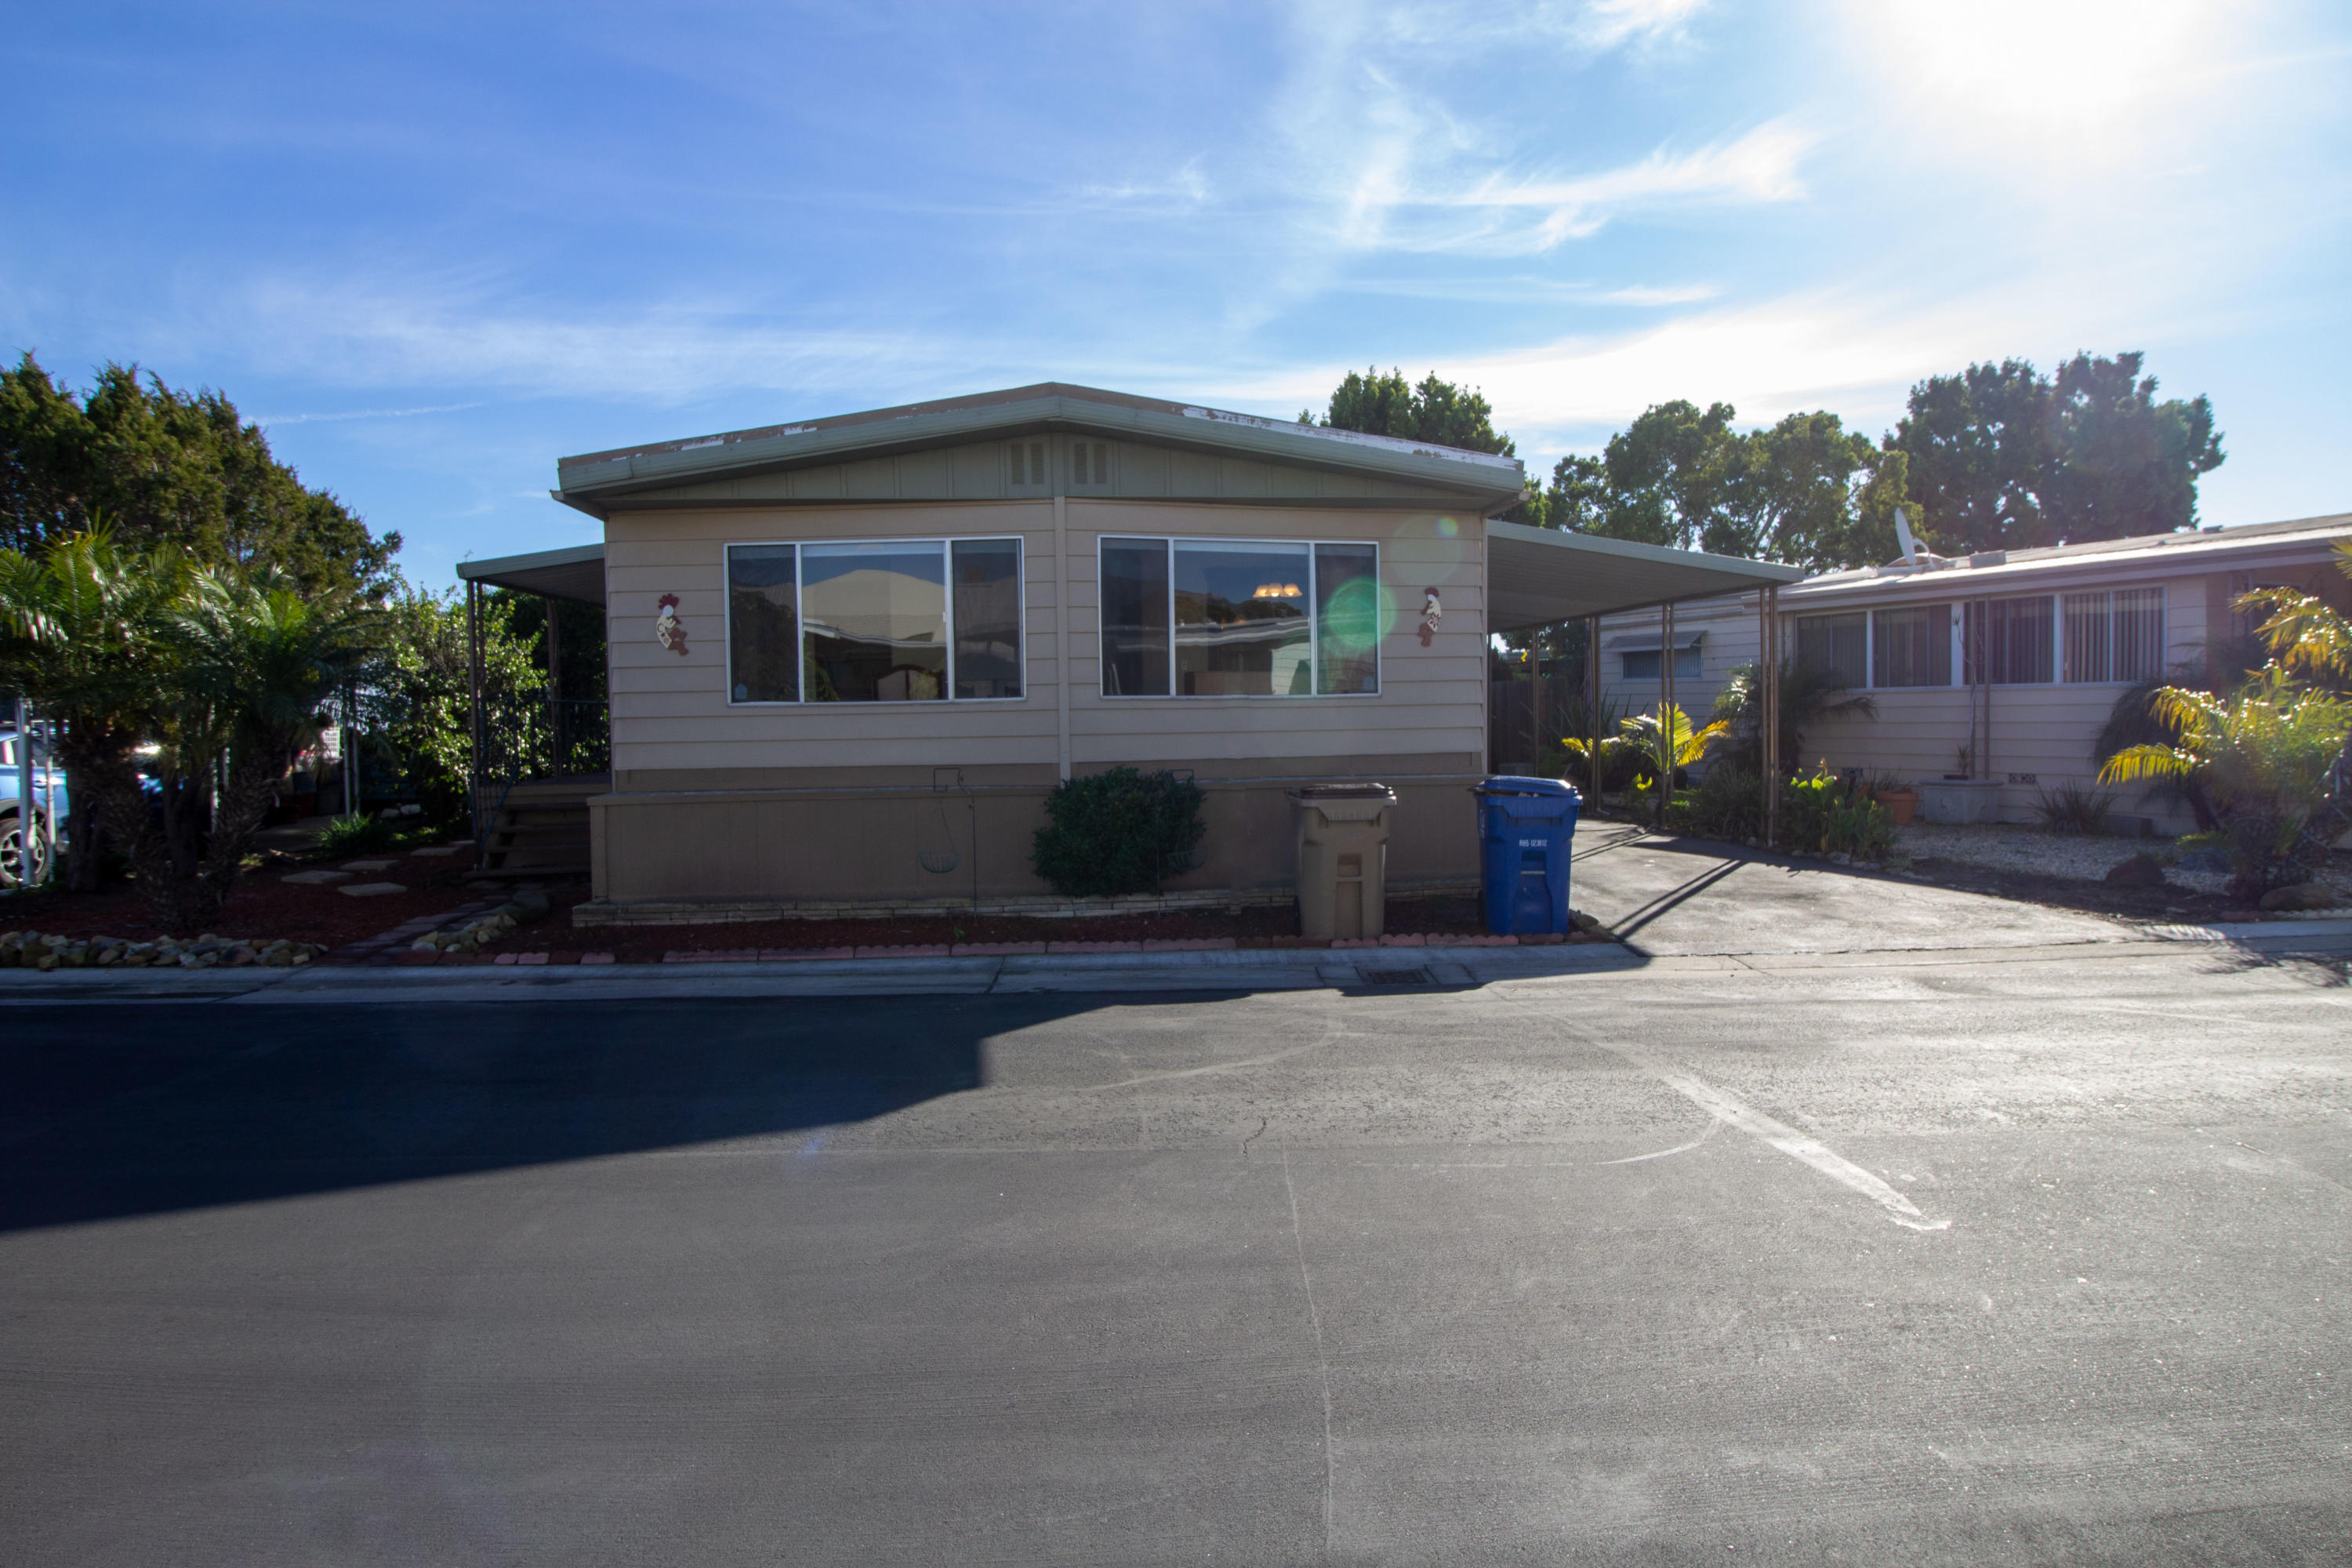 Mobile home in Resident owned Rancho Goleta Community Park; Newly Painted, New Refrigerator, New Washer/Dryer; Bright and clean this double wide 2 bedroom, and Den with 2 baths is in all ages park, It also has a nice size deck on the side to enjoy the morning sunshine. Low maintenance front and backyard includes fig and lemon trees. Walk-in heated bathtub/spa in master bathroom. Close to Bike path, UCSB, Goleta Beach, Shopping, Restaurants, Hospital and many more. Park  amenities include: Pool; Spa; Clubhouse; Gym; Lake; RV storage; and Greenbelt.